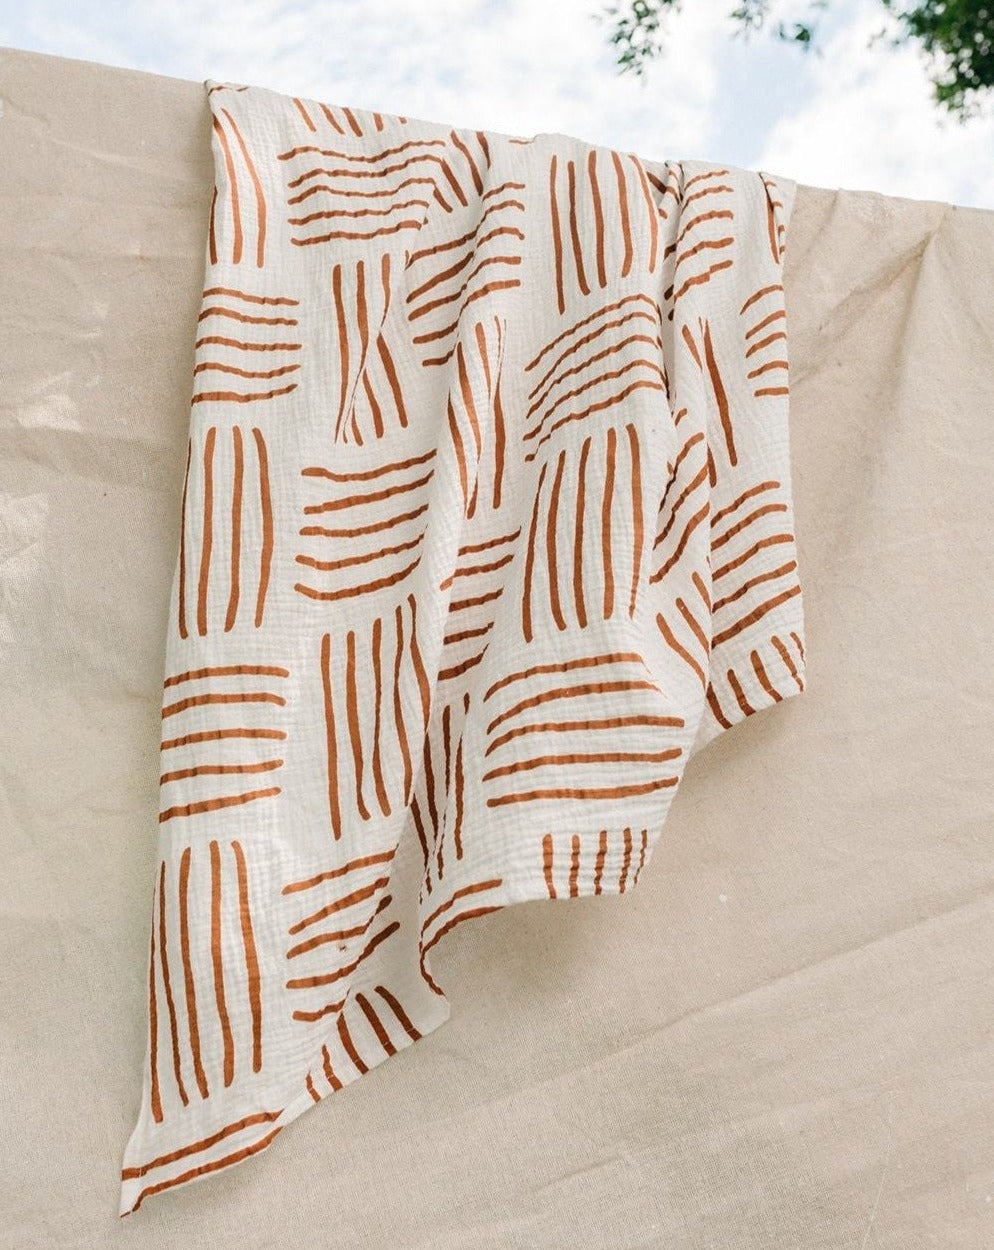 stunningly soft and durable earth wrap with Taninaka's Horizon print. New release design in organic cotton muslin this swaddle has brunt orange horizontal and vertical lines on a white or off white cotton background